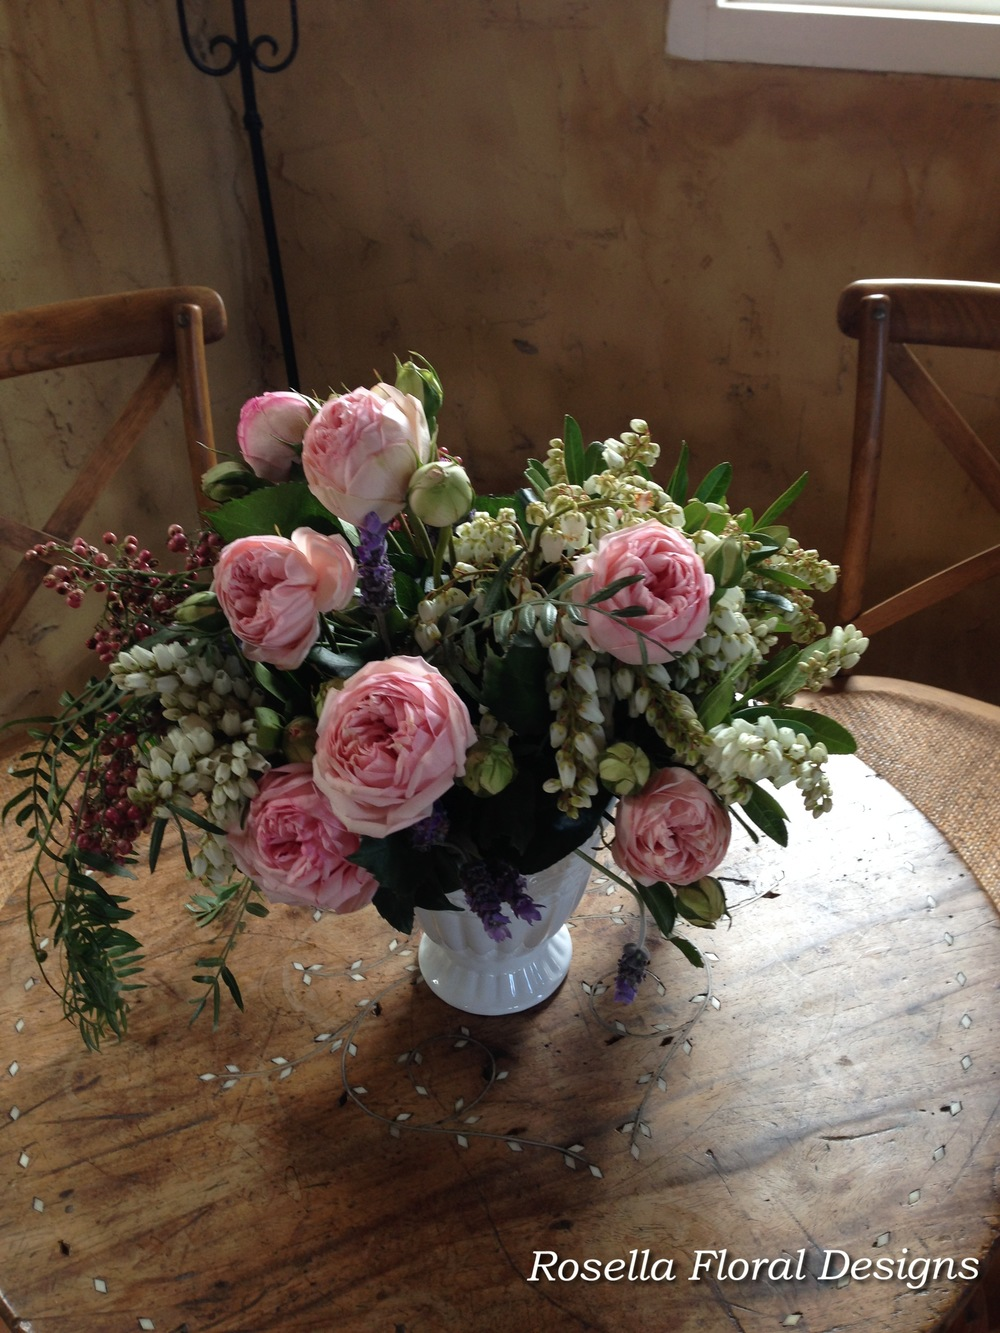 Garden rose floral arrangement in vase.jpg